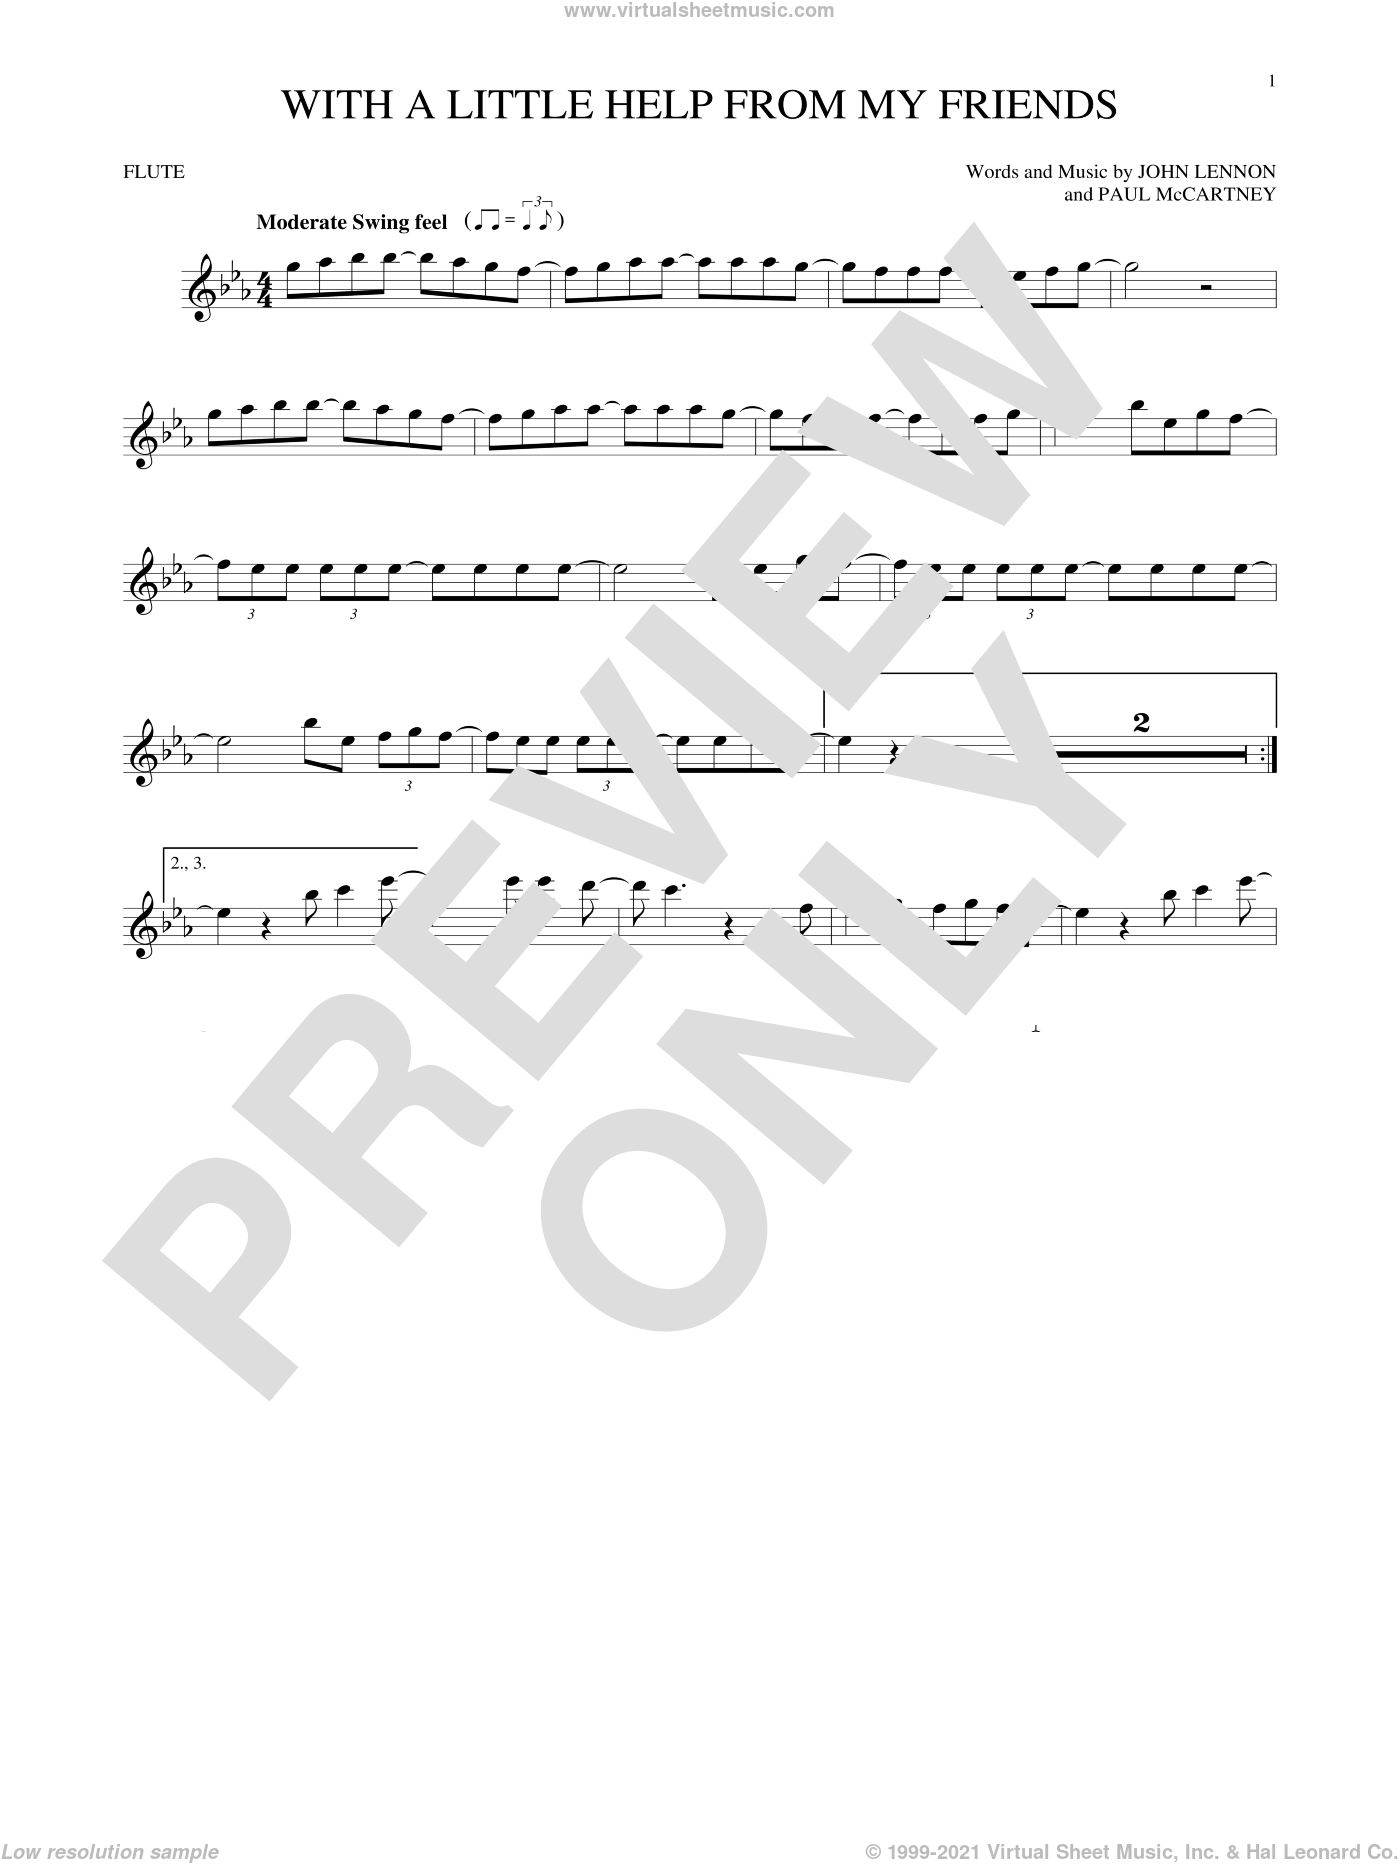 With A Little Help From My Friends sheet music for flute solo by The Beatles, Joe Cocker, John Lennon and Paul McCartney, intermediate